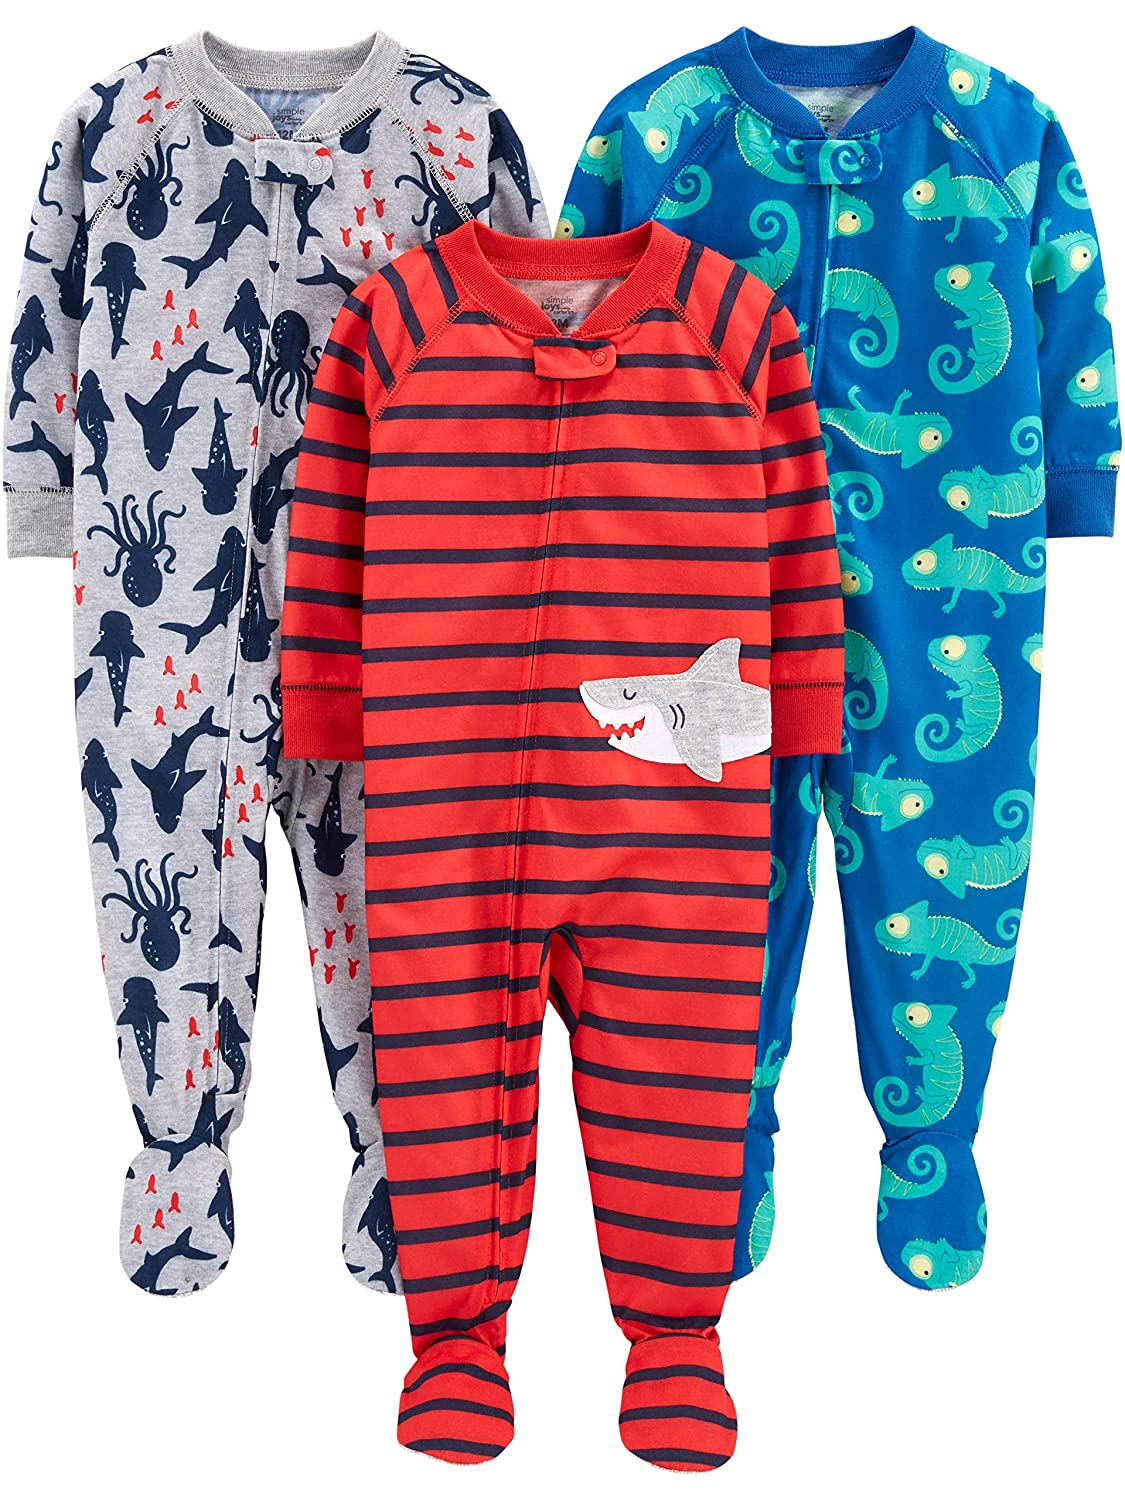 Pack of 3 Simple Joys by Carters Baby Boys 3-Pack Loose Fit Flame Resistant Fleece Footed Pajamas